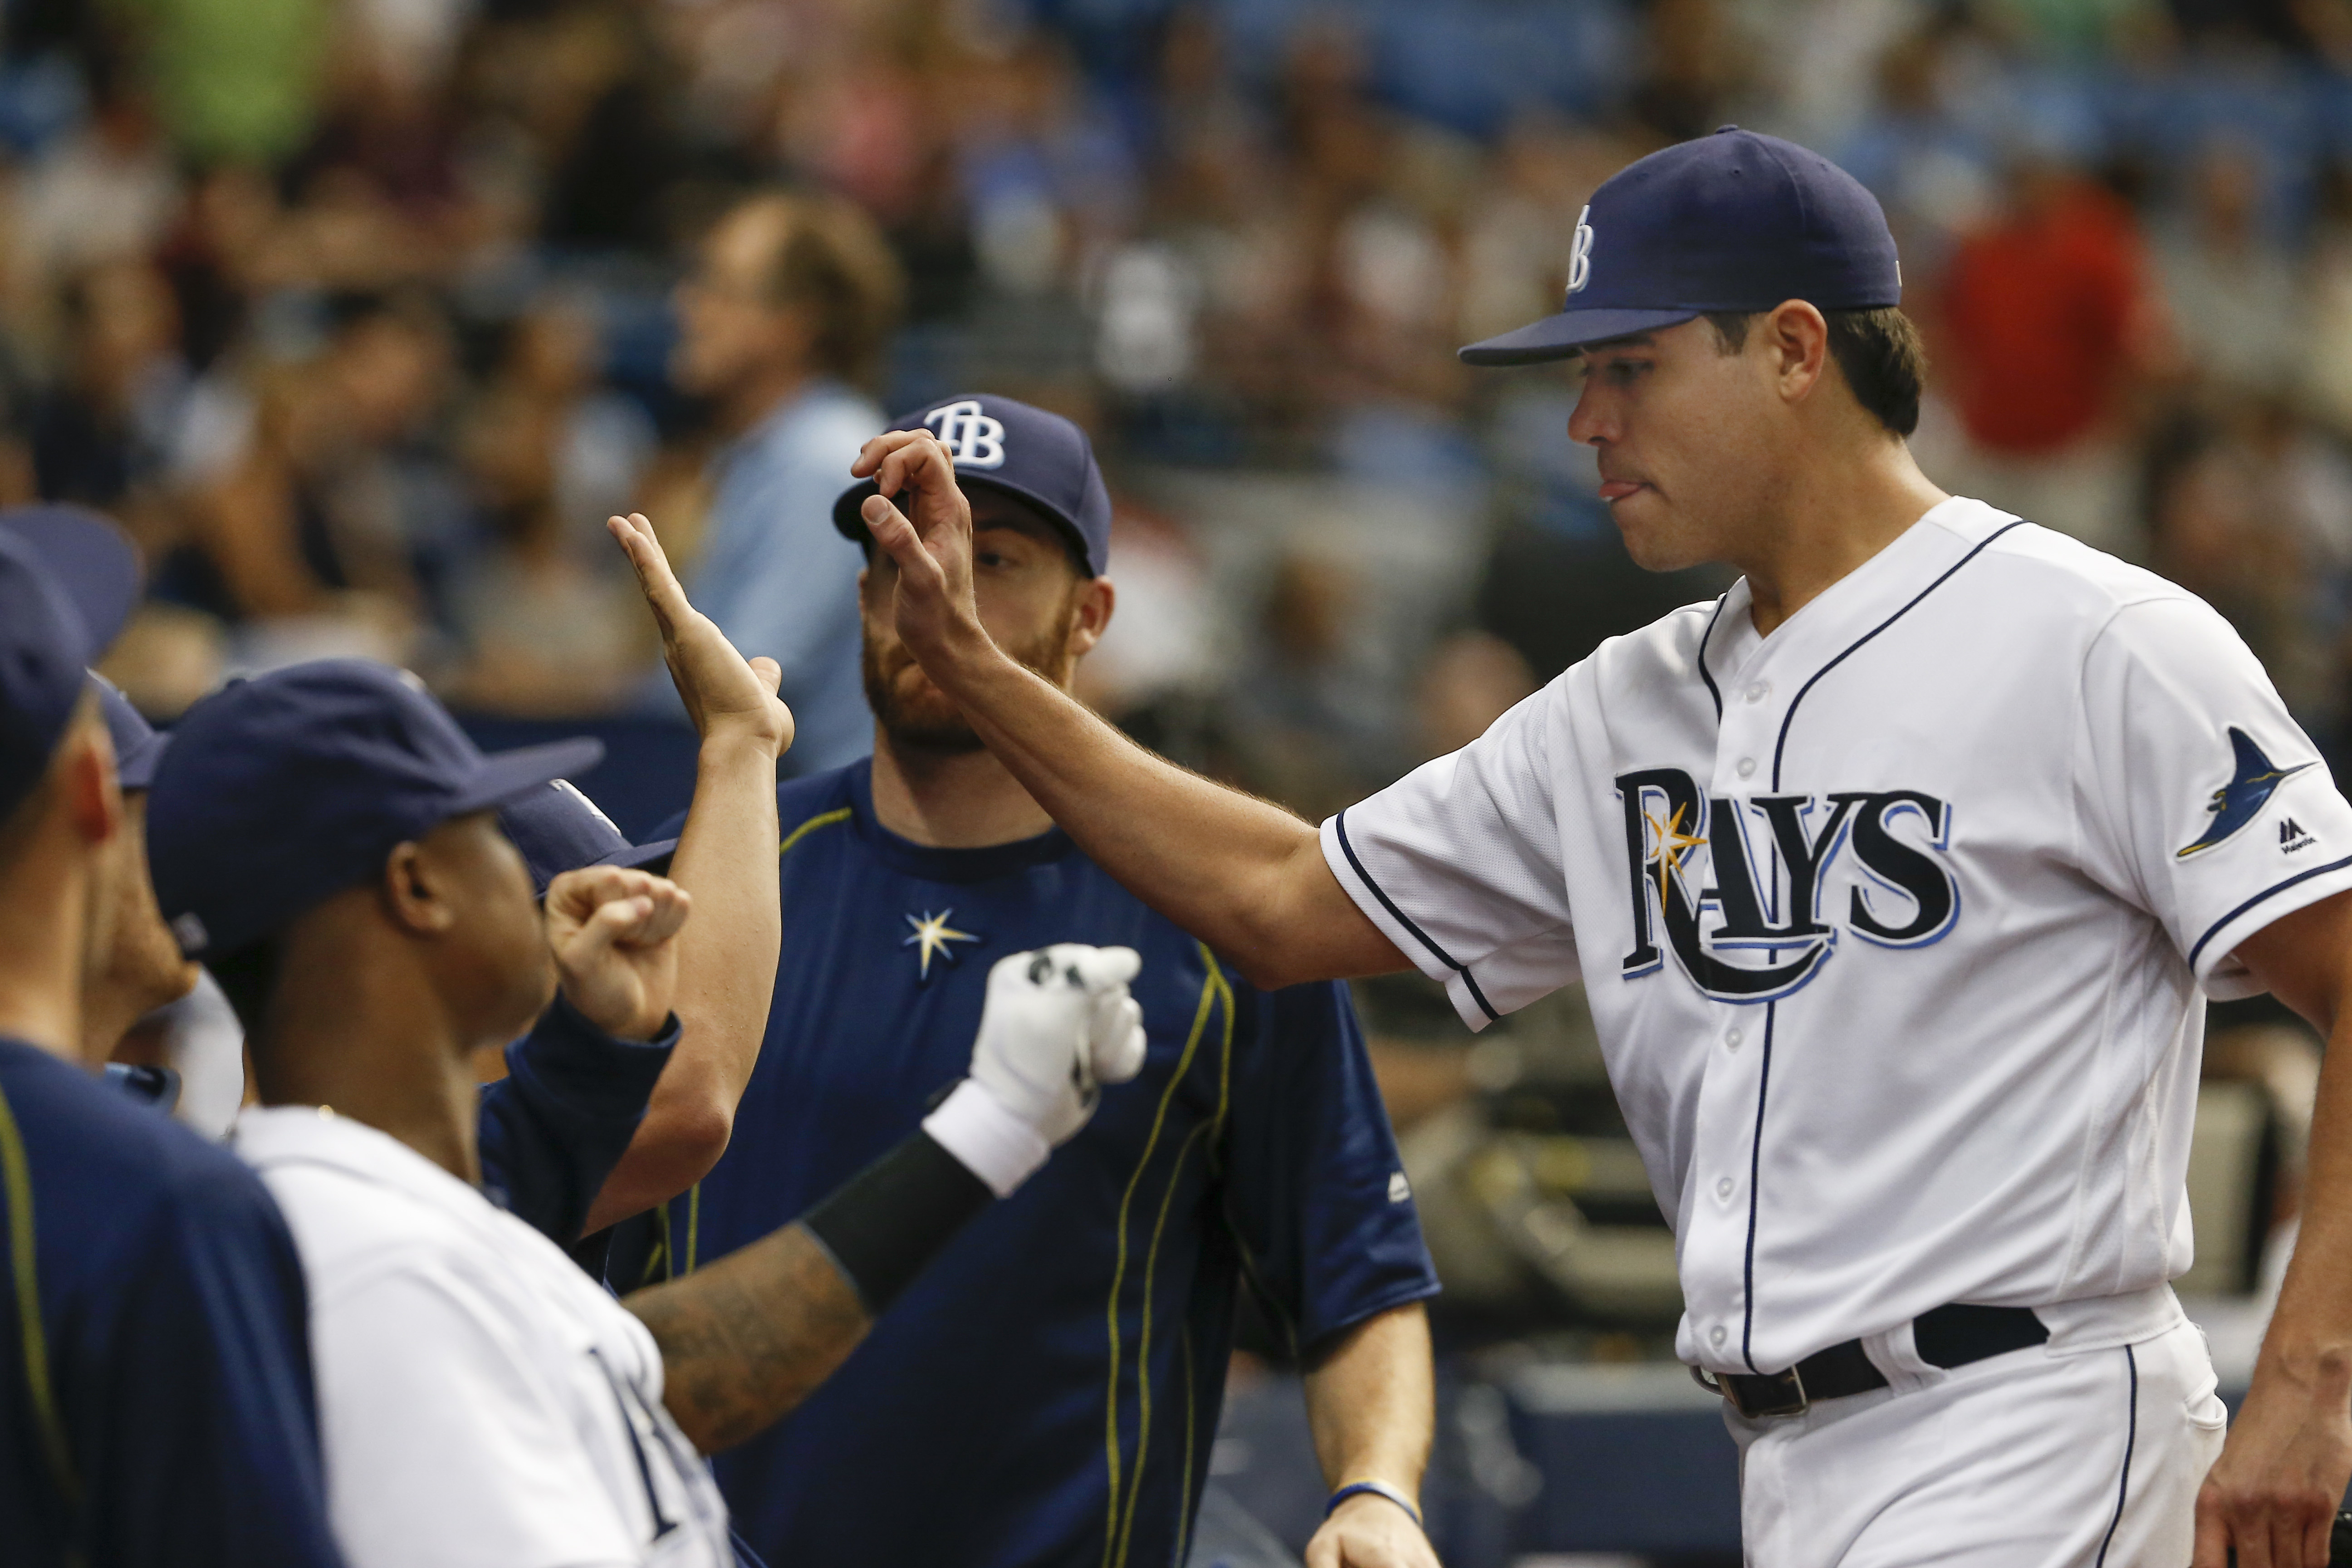 Tampa Bay Rays starting pitcher Matt Moore, right, gets congratulations from teammates during the sixth inning of a baseball game against the Baltimore Orioles, Saturday, July 16, 2016, in St. Petersburg, Fla. (AP Photo/Reinhold Matay)